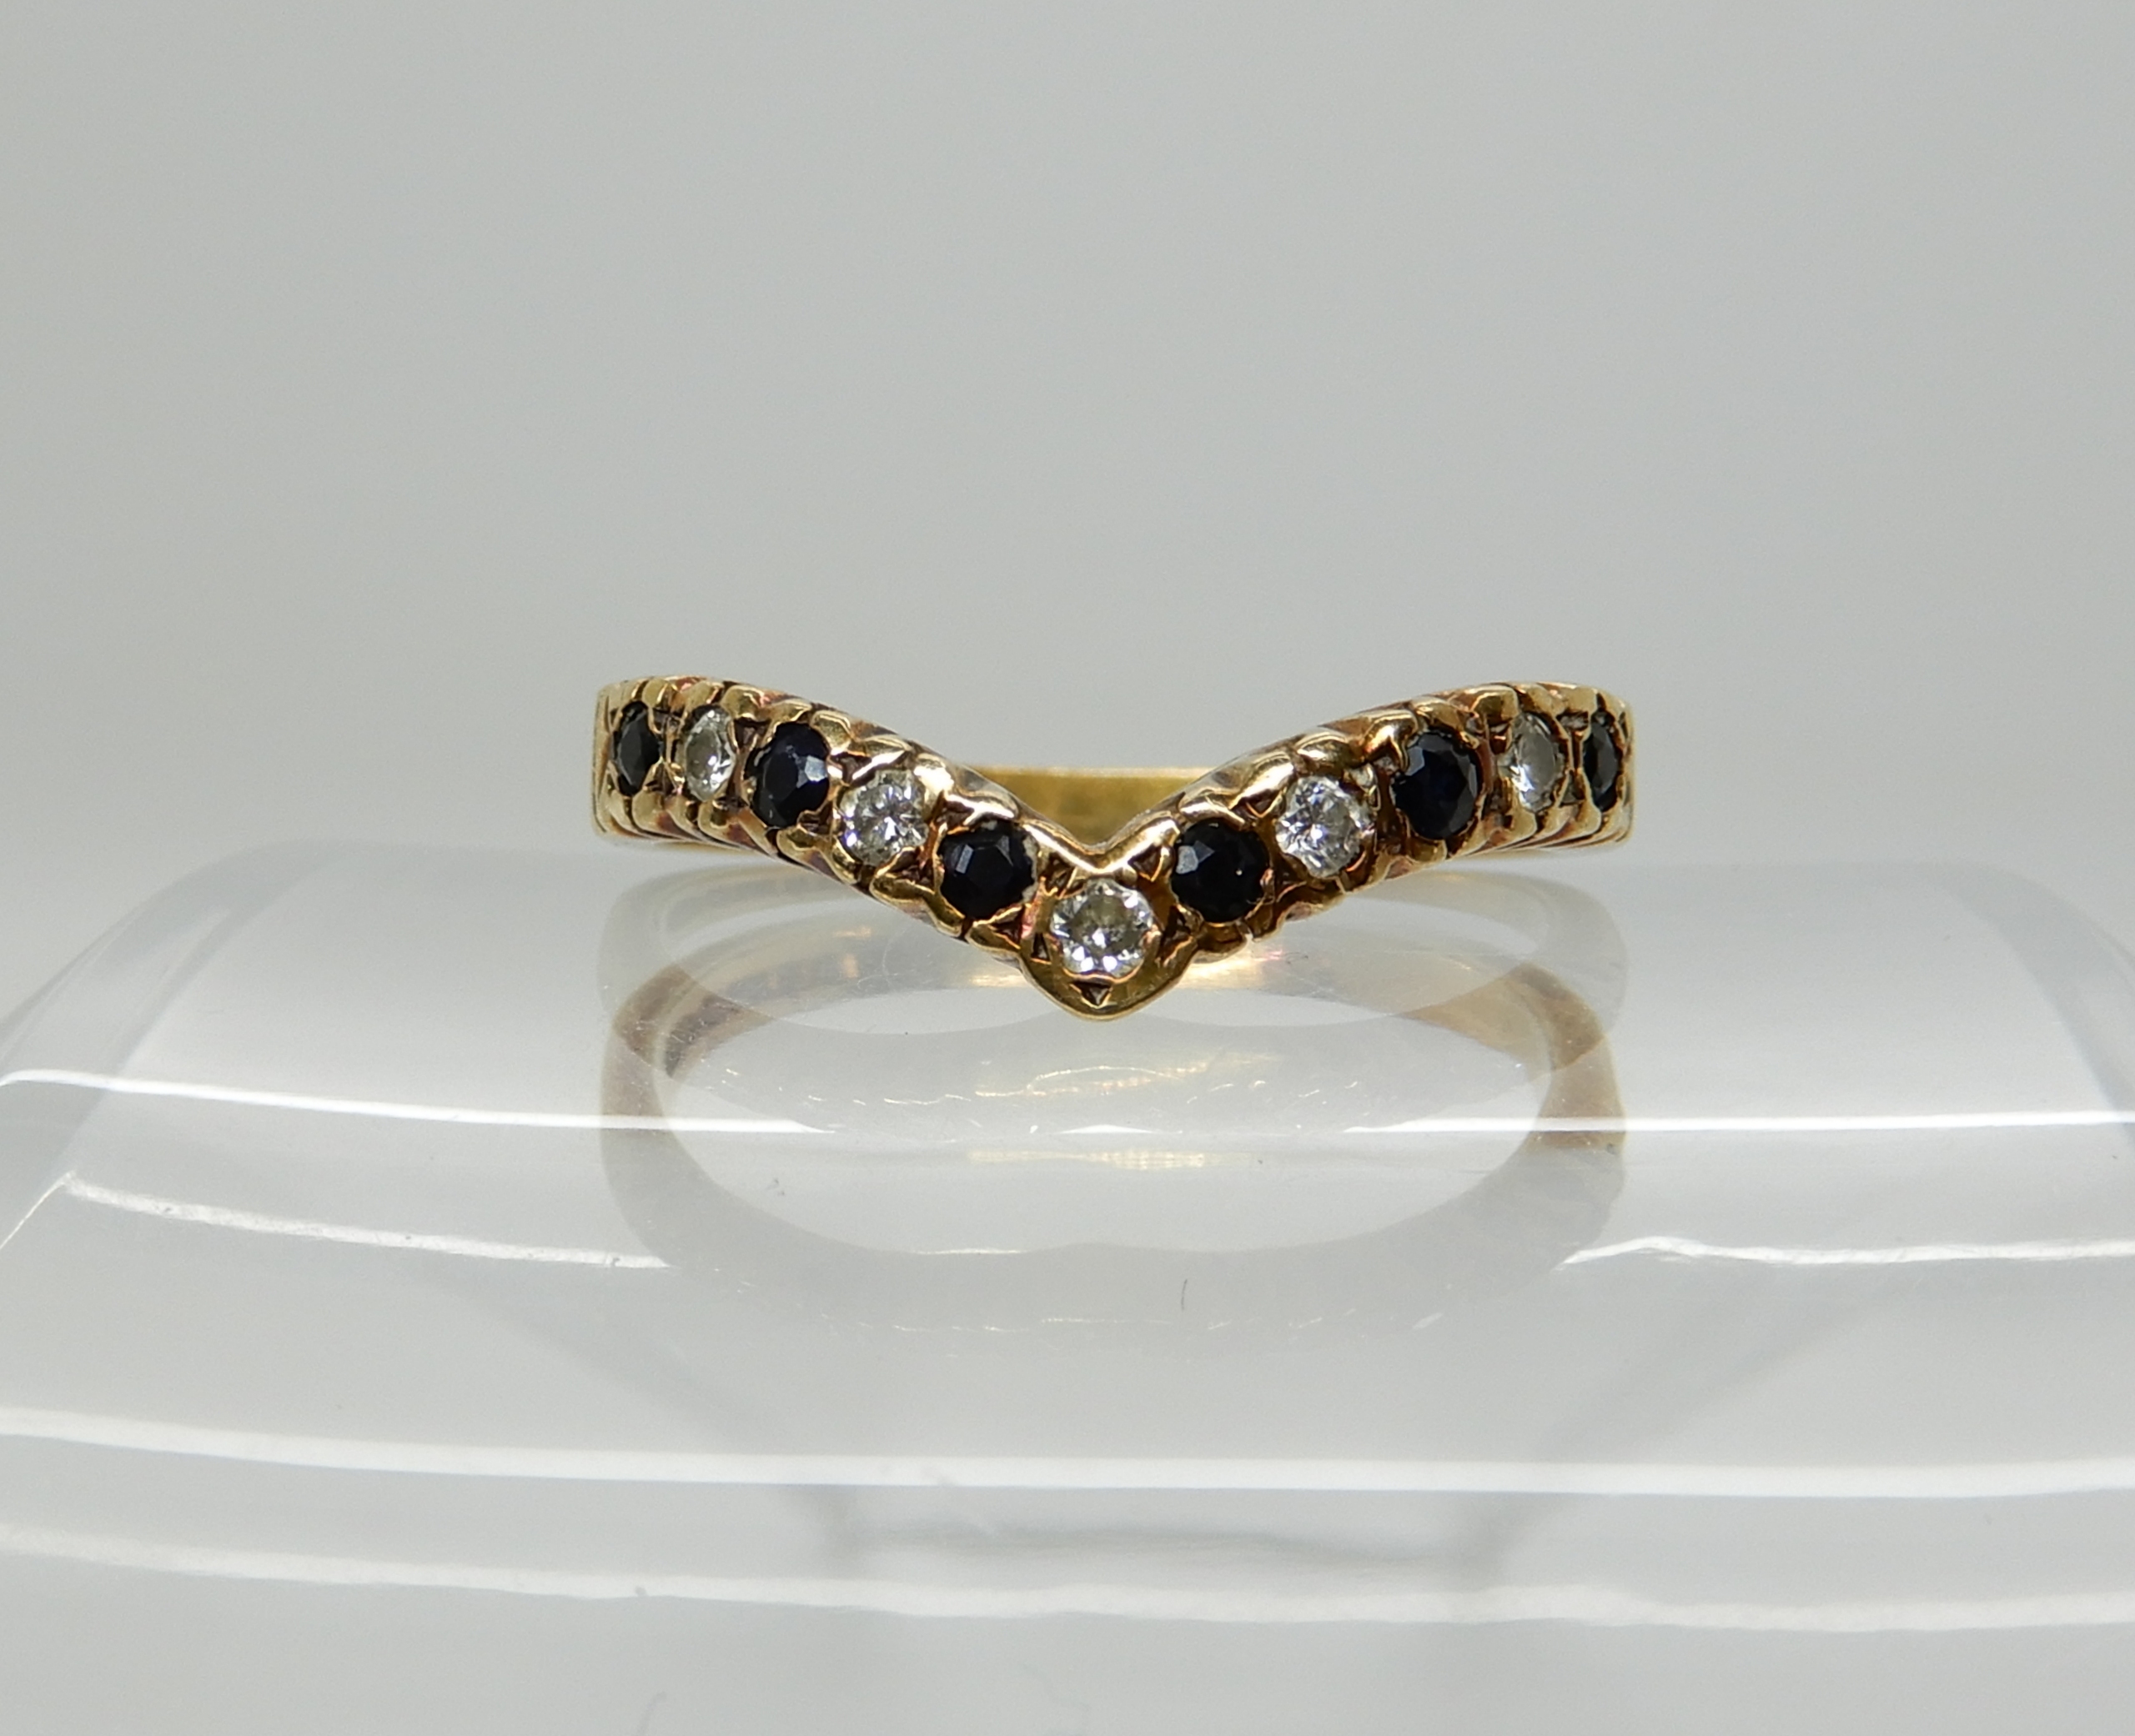 Lot 9 - A 9ct herringbone shaped ring set with sapphires and diamonds, size U1/2, weight 3gms Condition